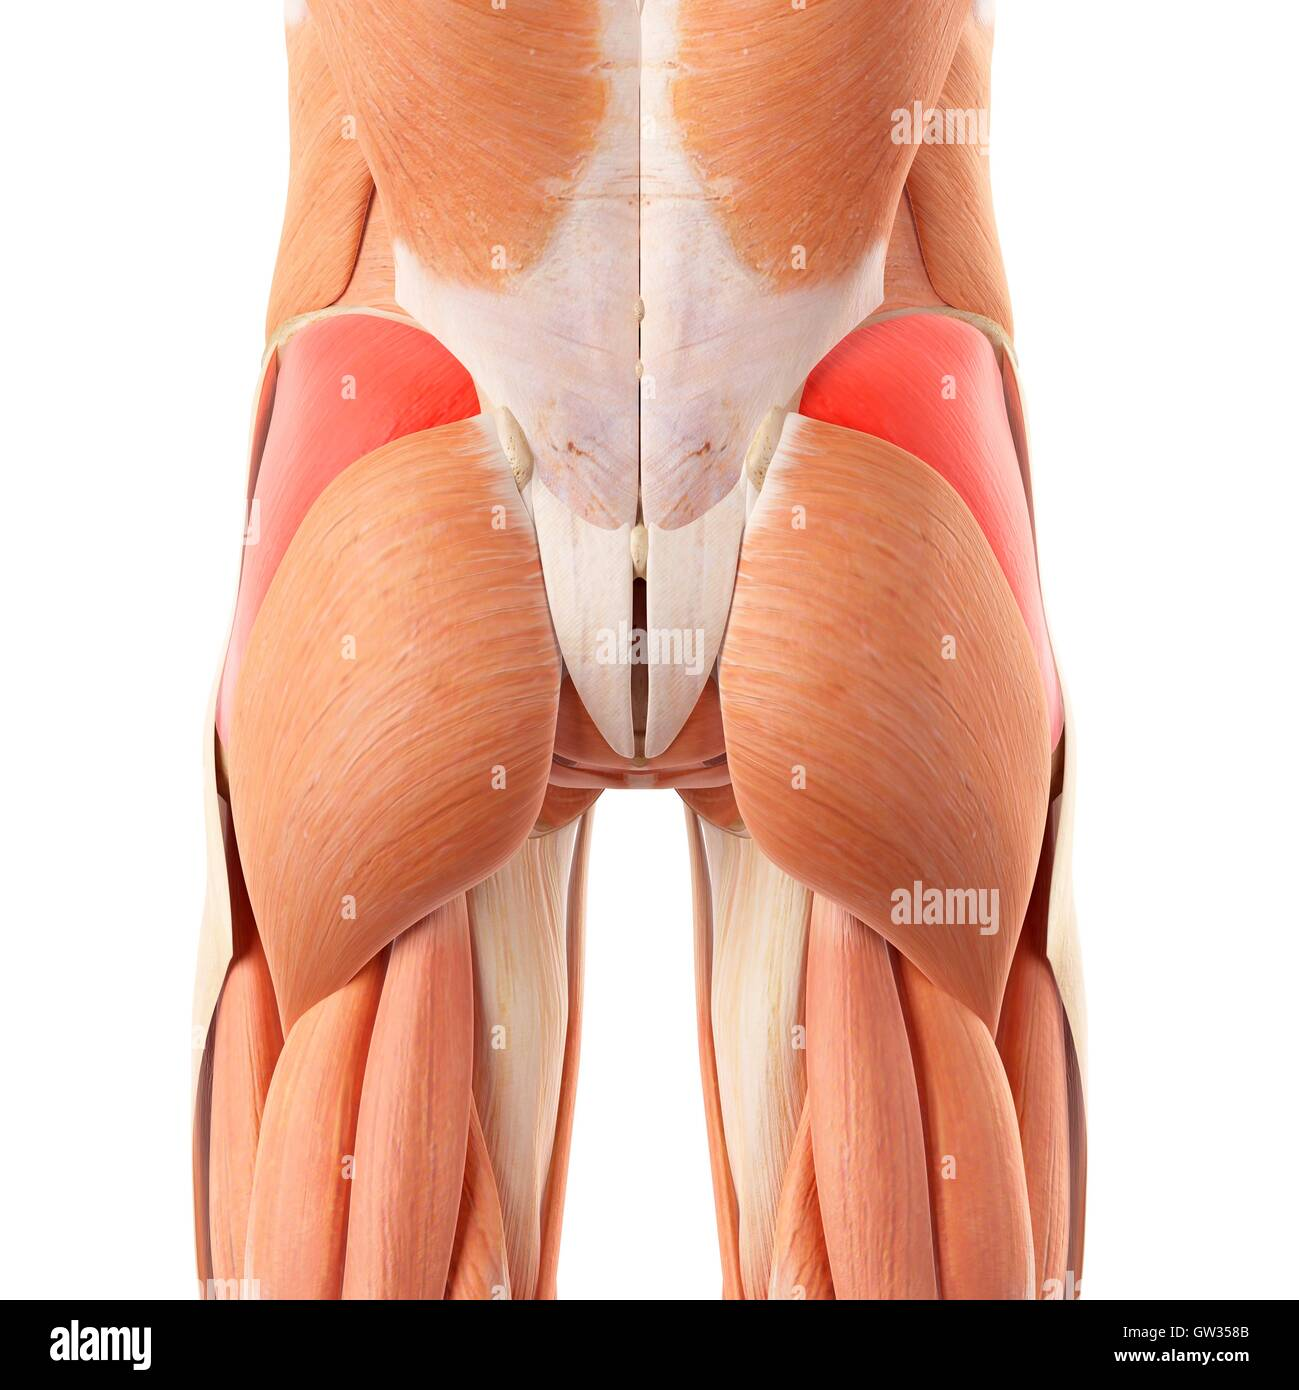 Anatomy Of Human Buttocks Imágenes De Stock & Anatomy Of Human ...